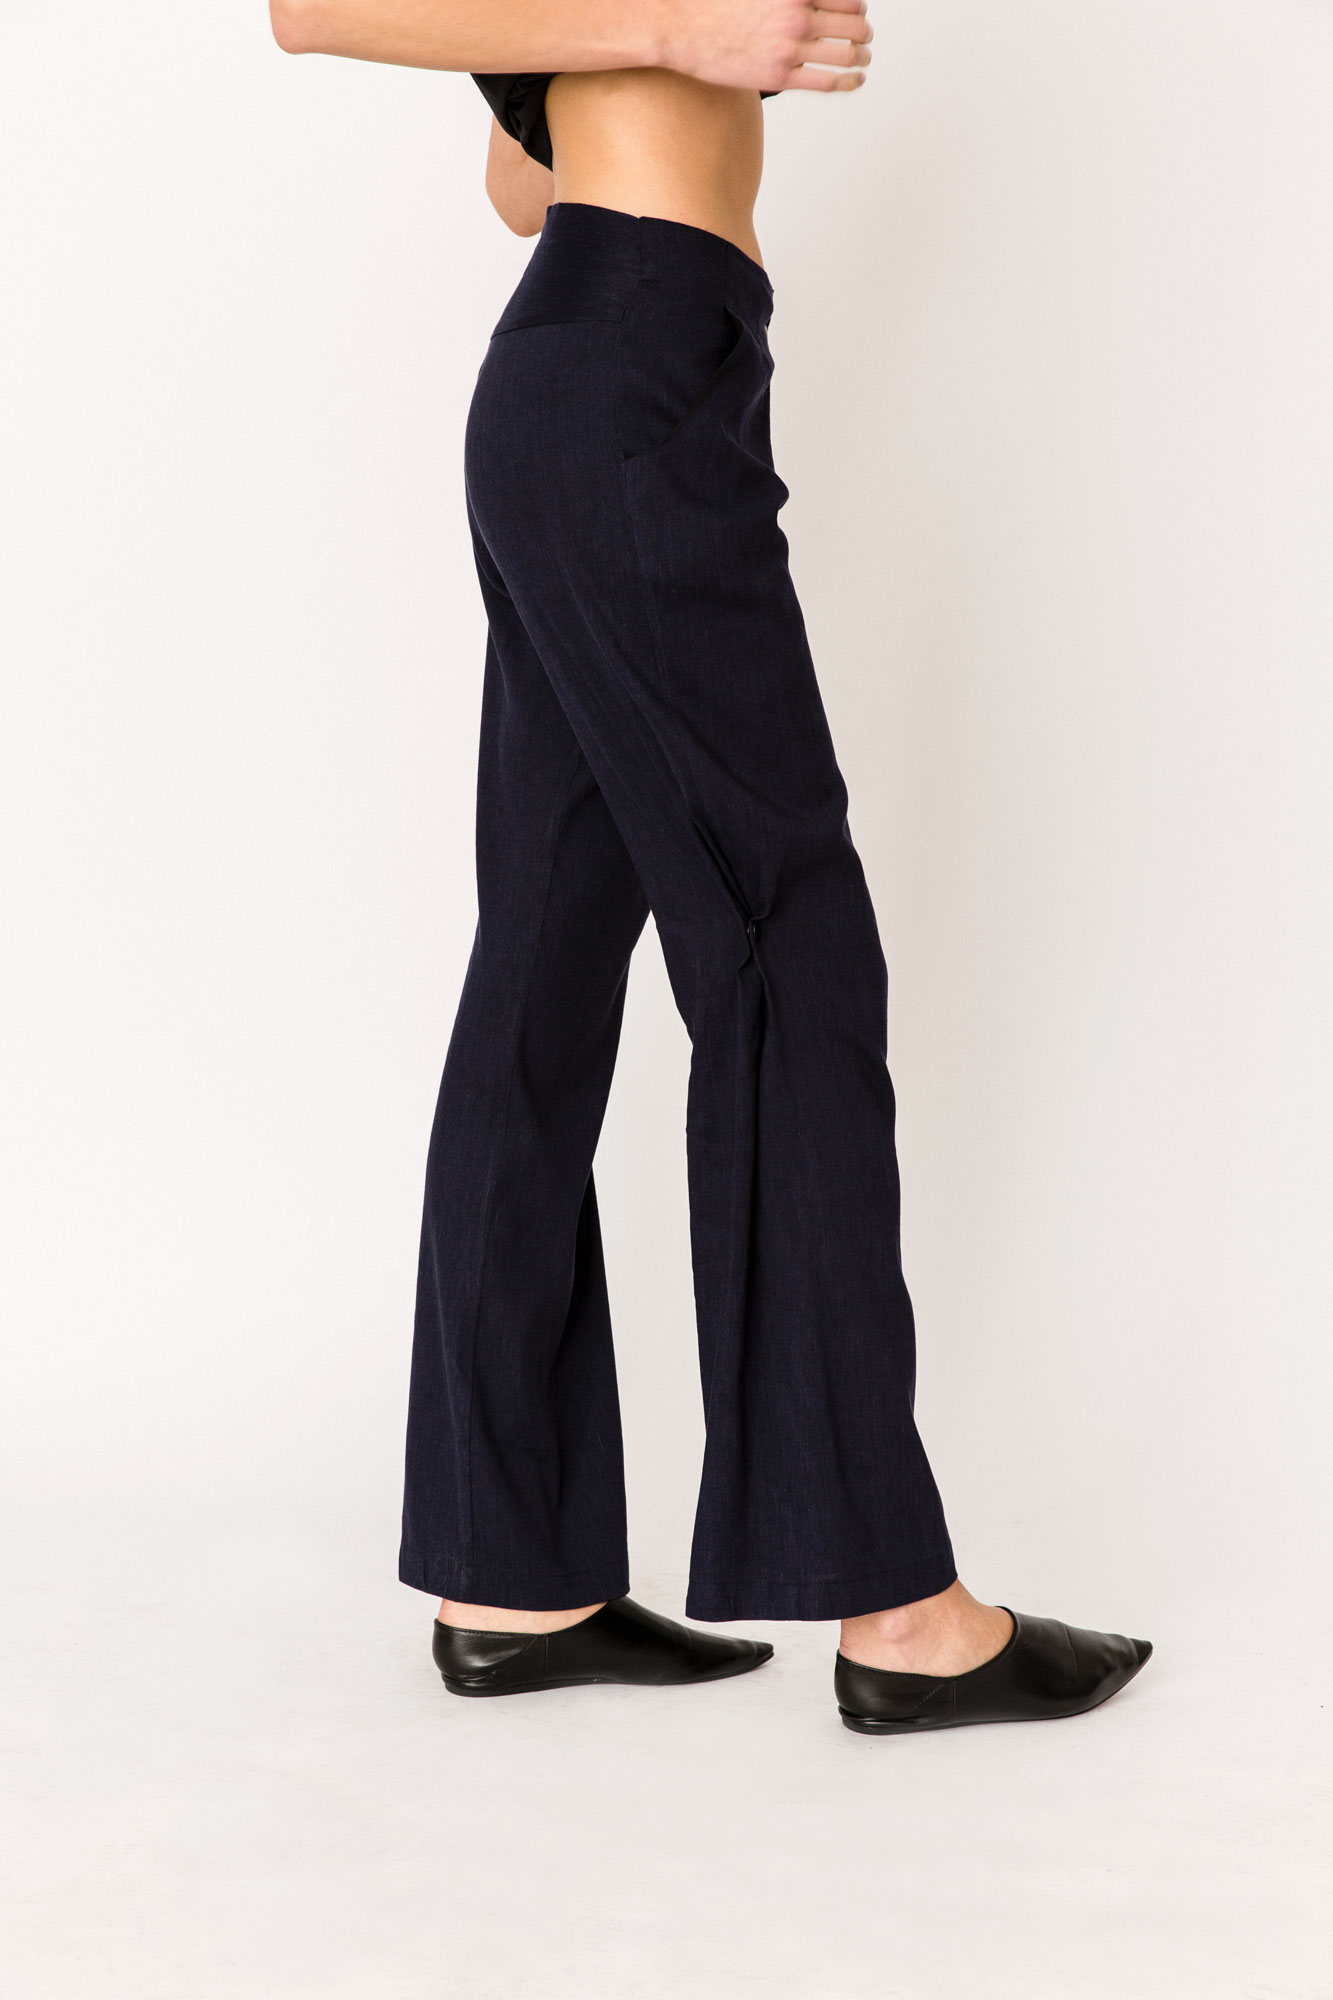 S18-11Agape_Trousers1